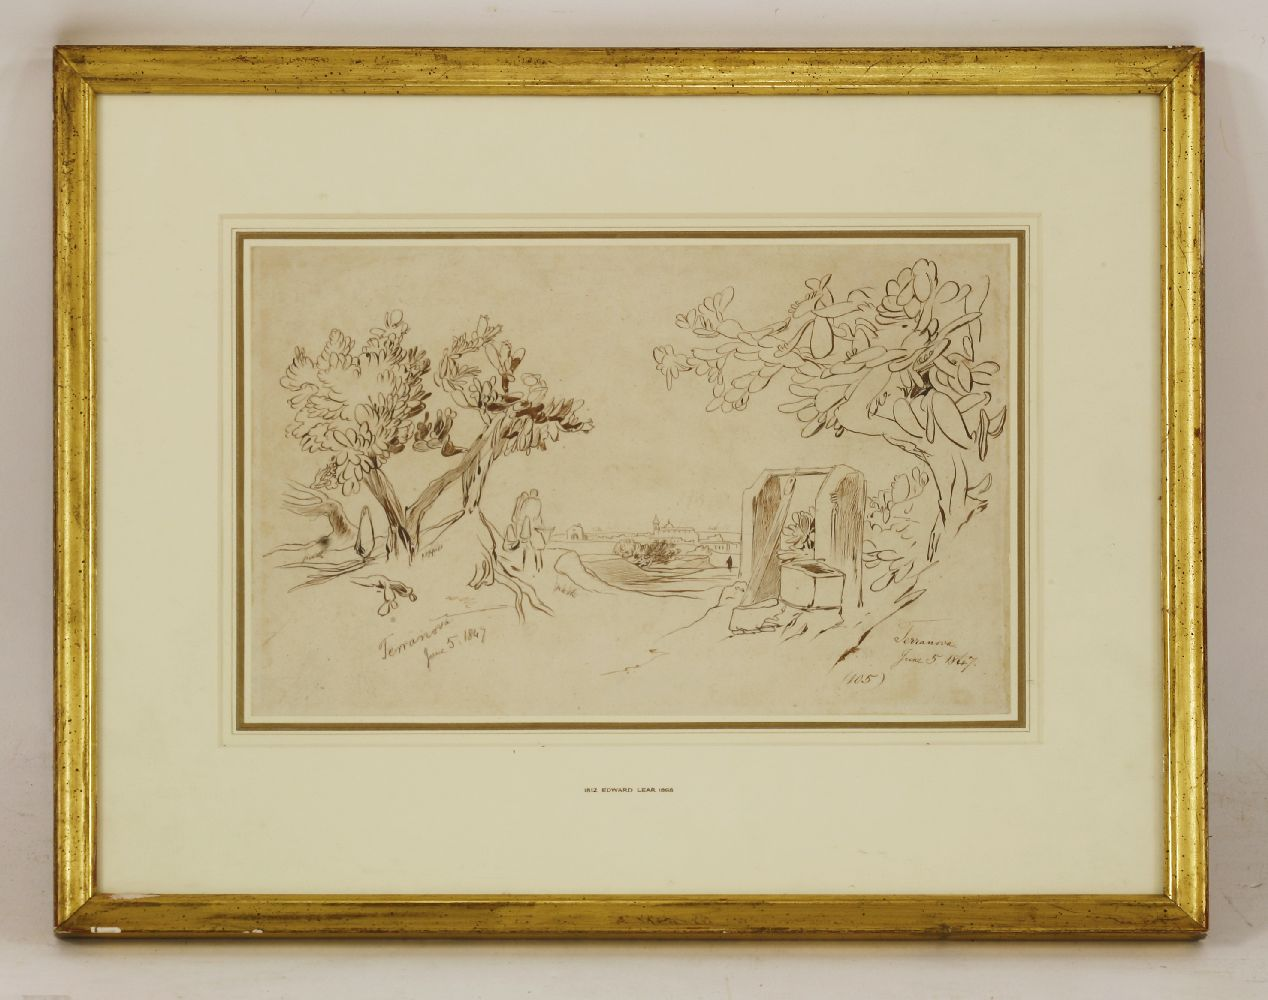 Lot 566 - Edward Lear (1812-1888)TERRANOVA, SICILYInscribed and and dated 'June 5 1847' twice and numbered